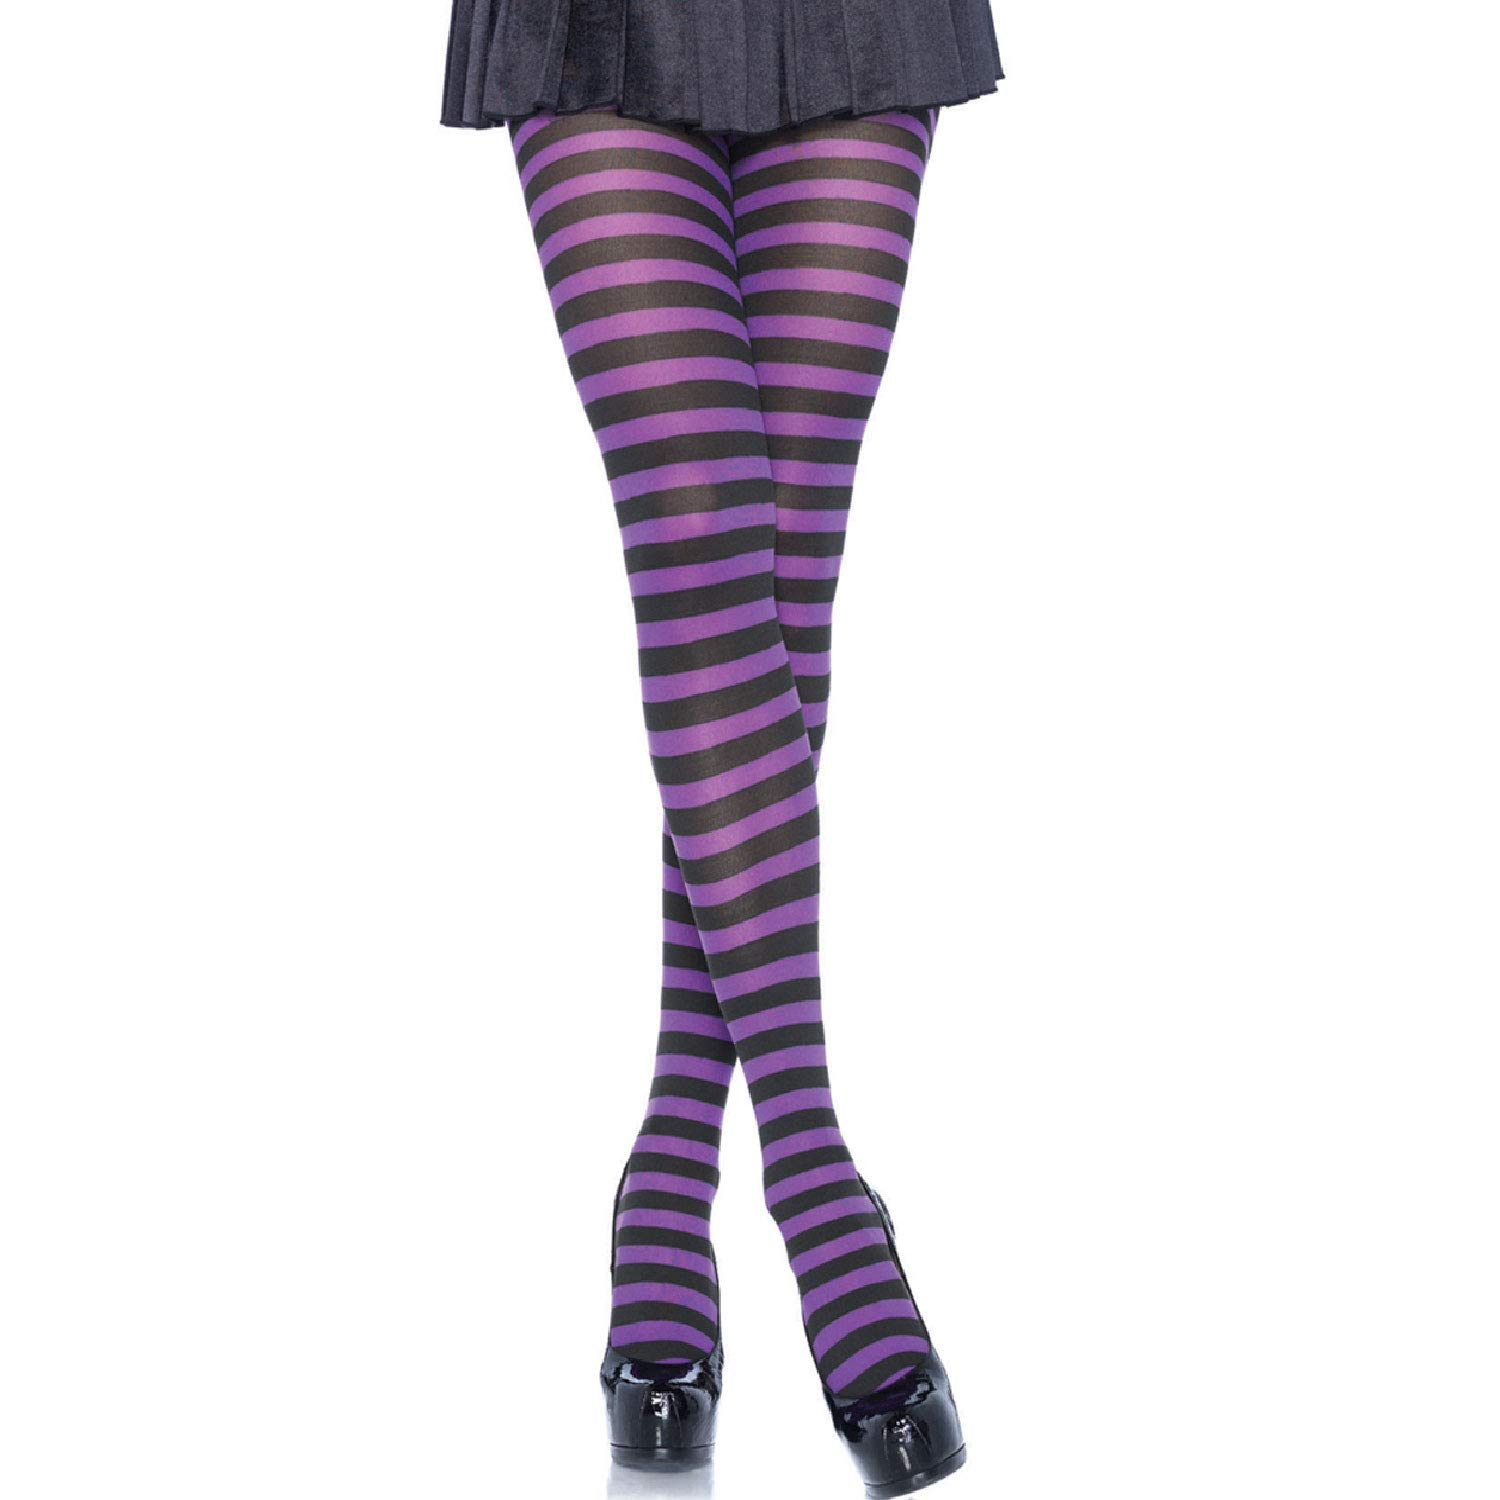 548b1f5bbd251 Leg Avenue, Plus Size Stripe Tights, 3x-4x Black/ Red: Amazon.co.uk: Toys &  Games